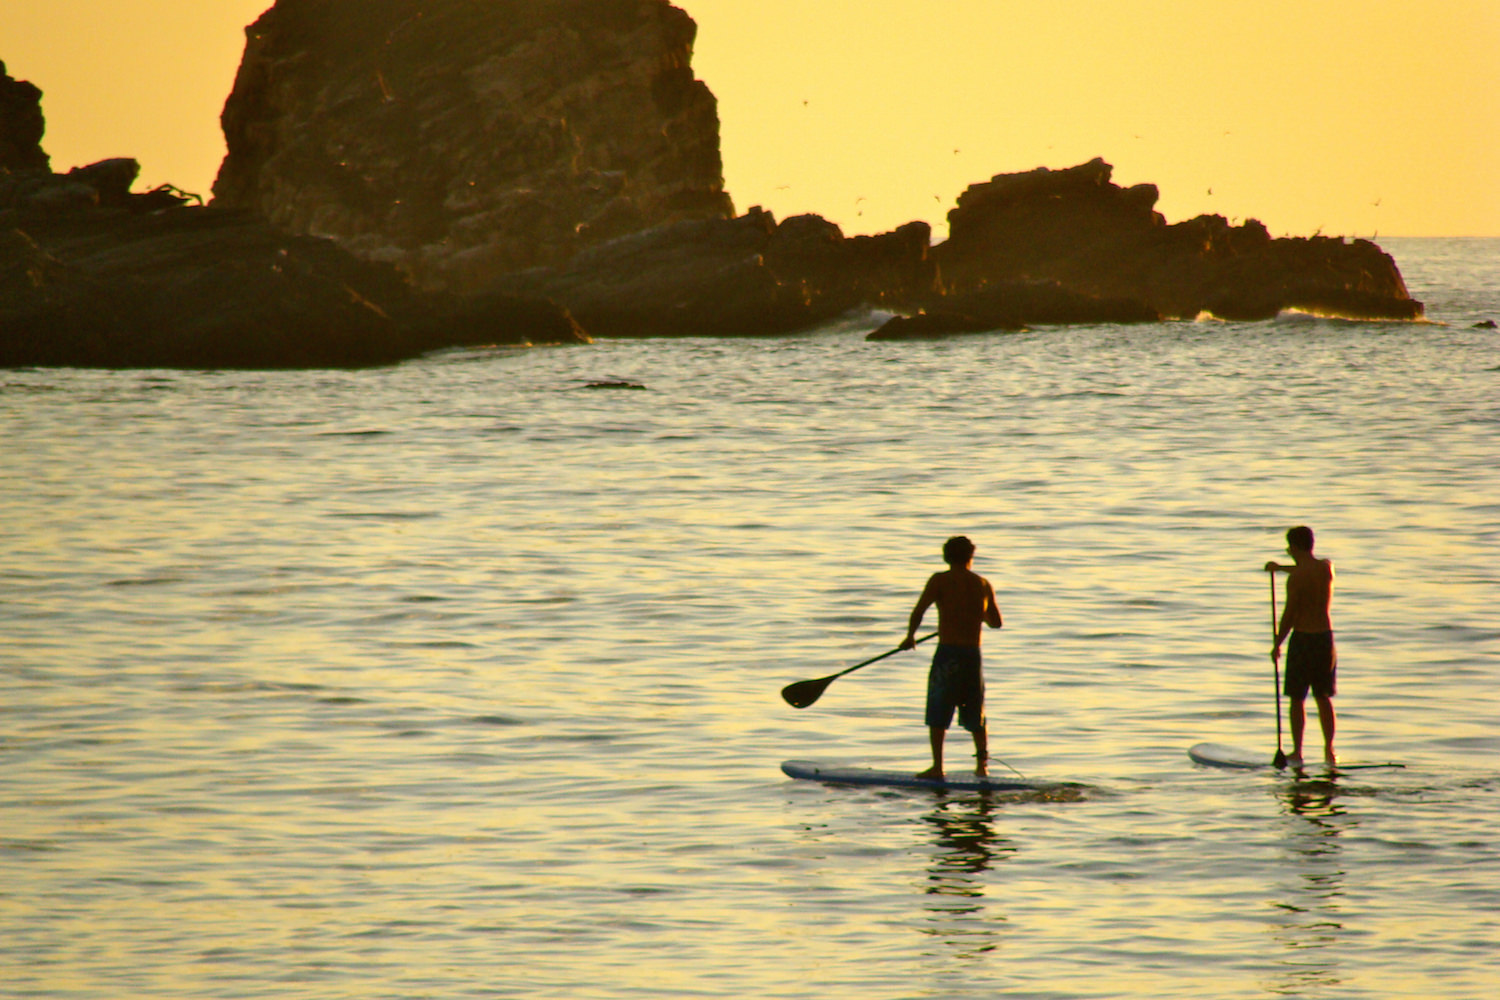 Sunset paddleboarding tour - Puerto Escondido